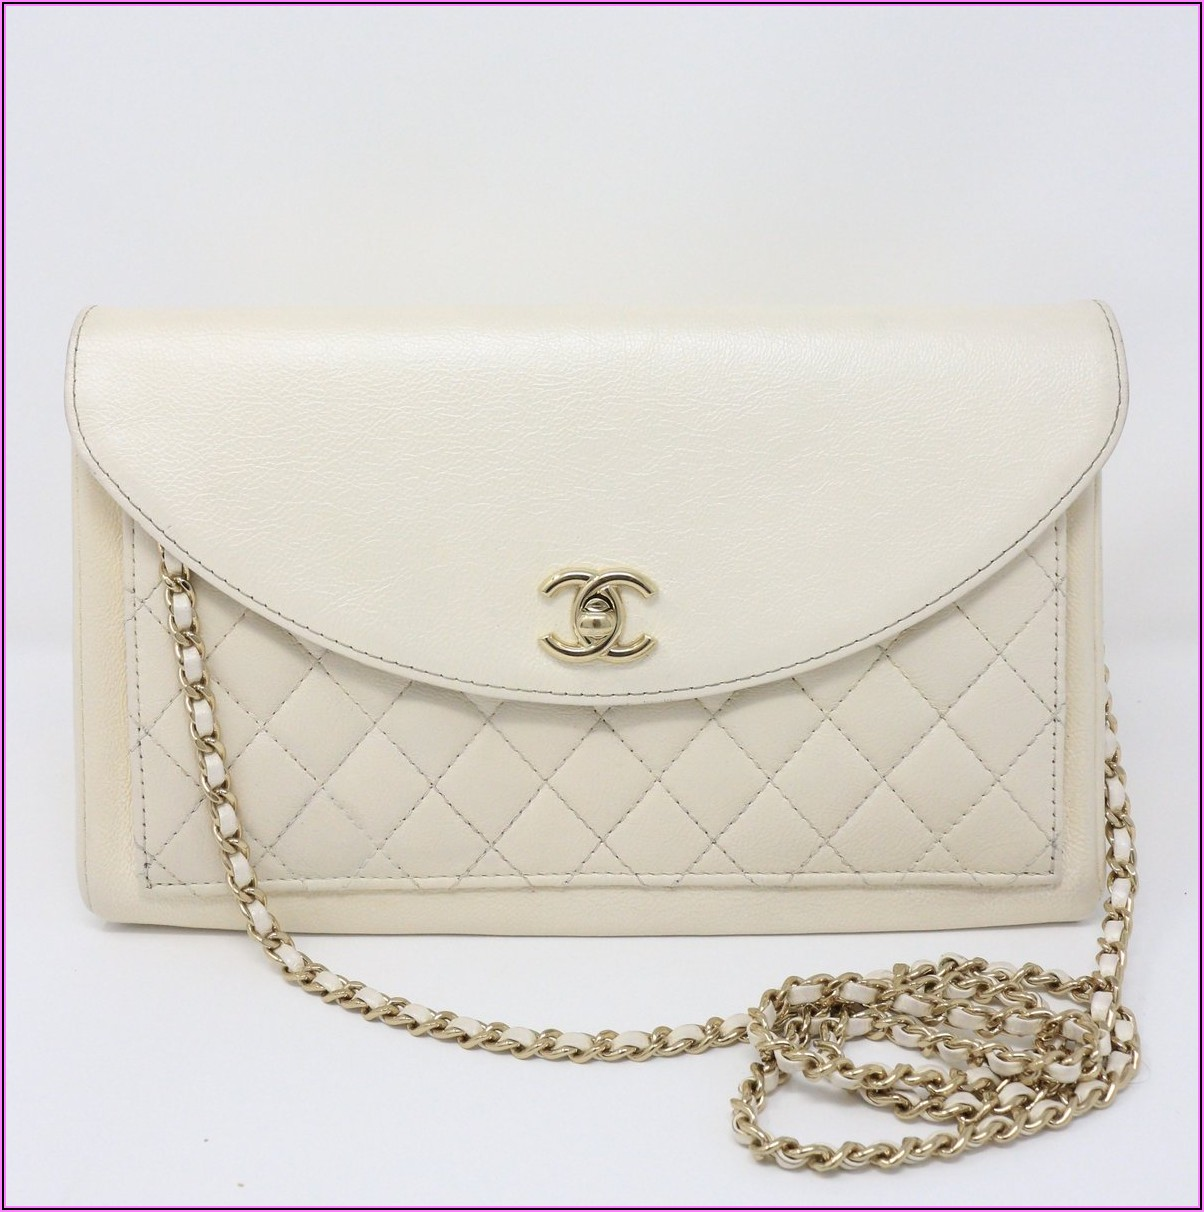 Chanel Envelope Clutch With Chain